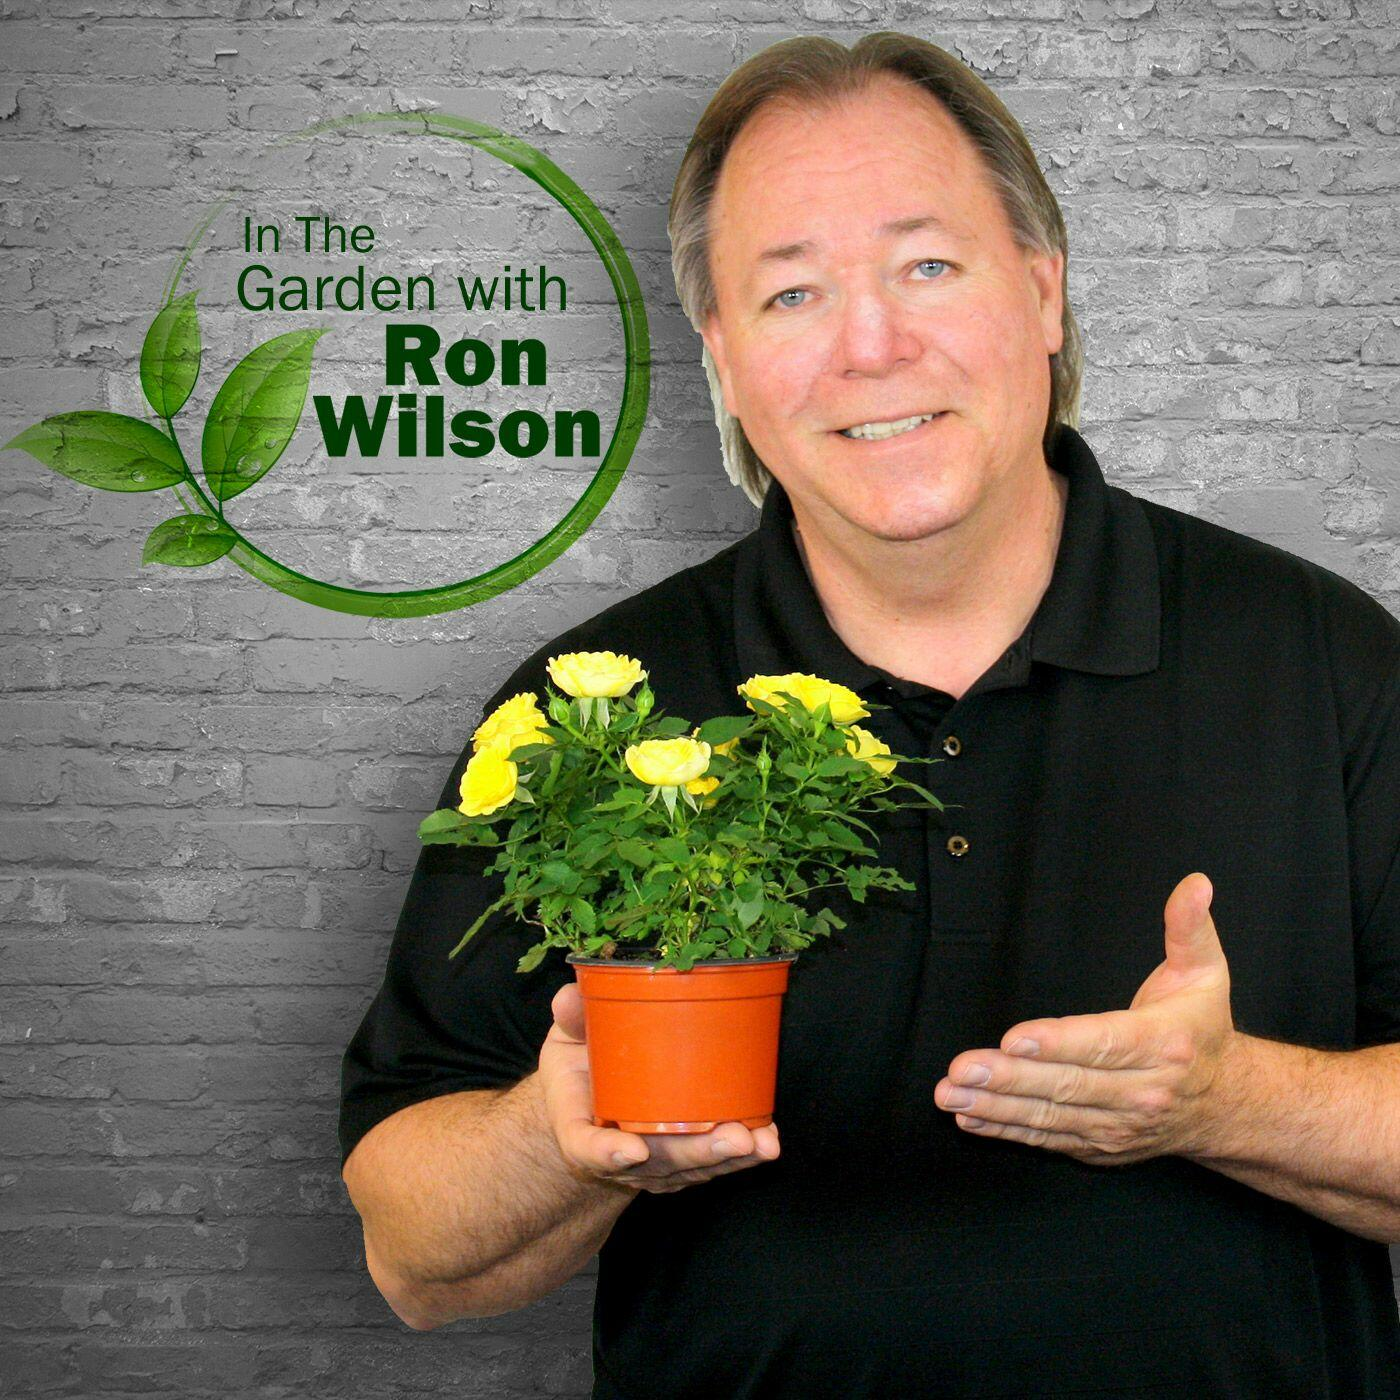 In The Garden with Ron Wilson